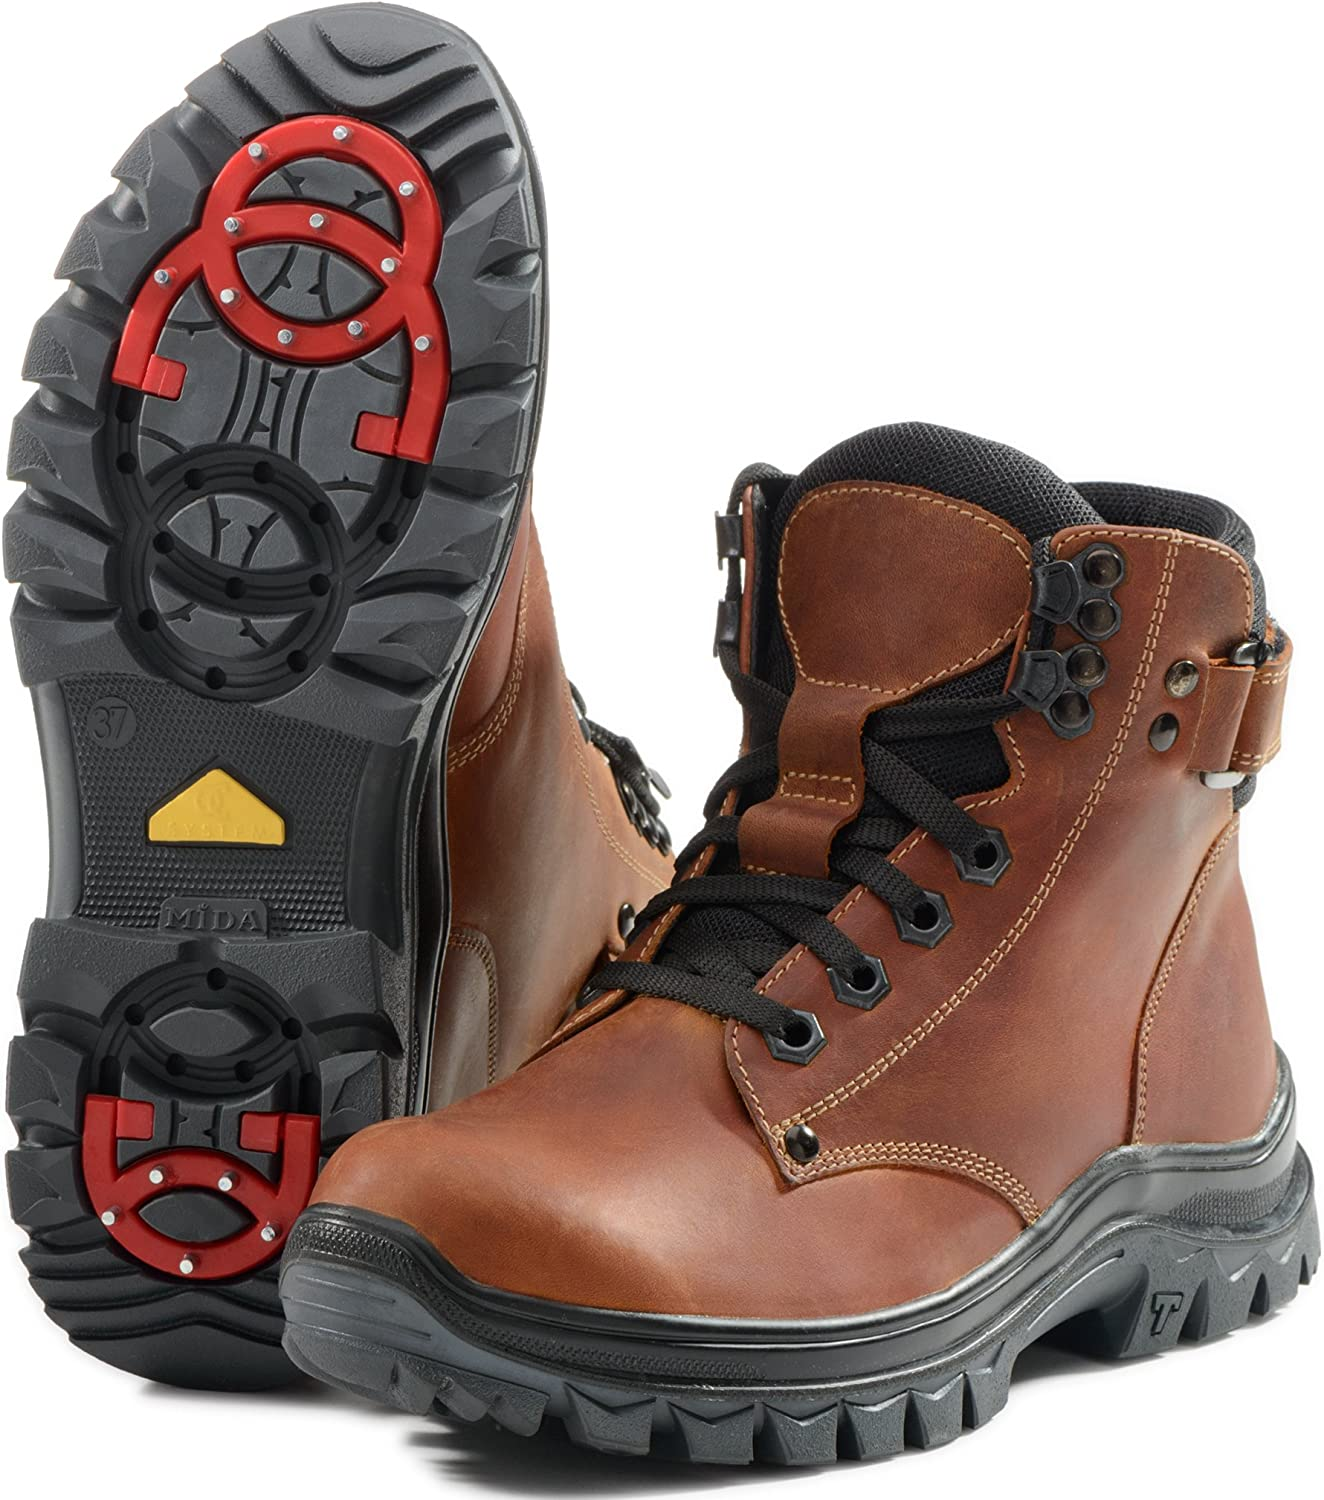 MIDA Boys and Girls Winter Boots for Kids 34149  Leather and Fur Snow shoes, Abrasion Resistant, with Special Anti-Slip System OC-System, Warm and Comfortable